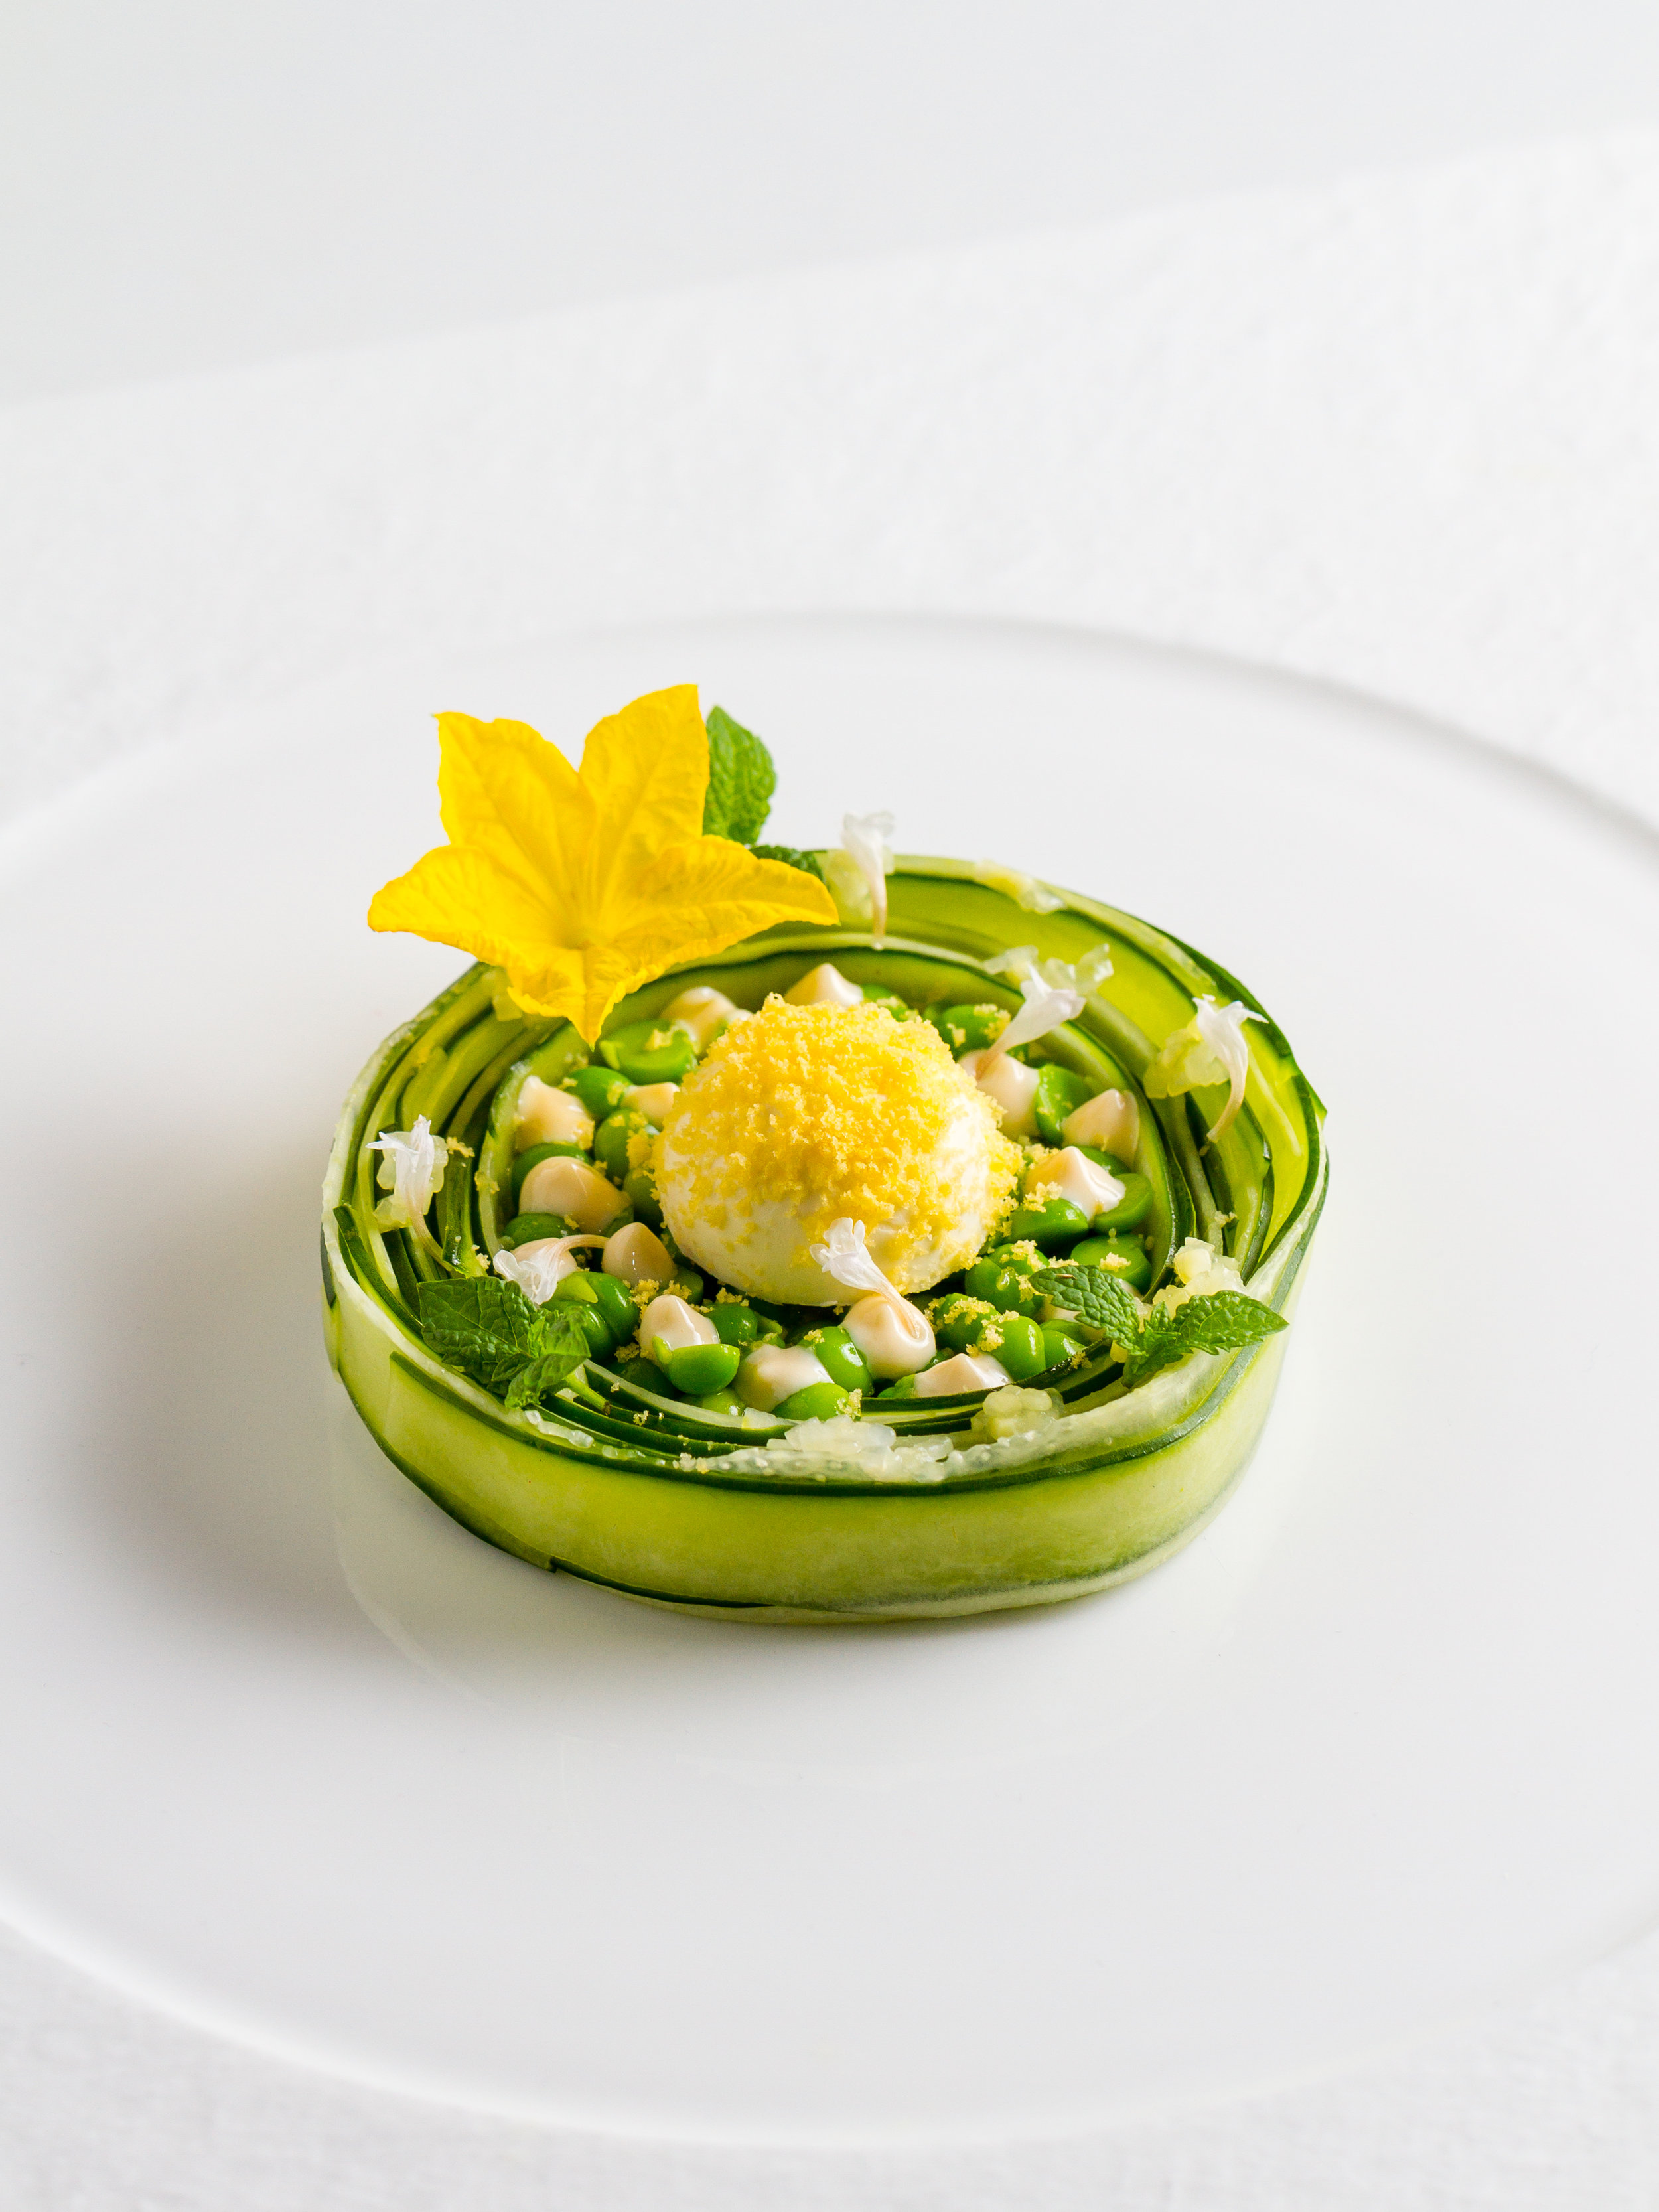 Cucumber, Miso-Mayonnaise, Cream Cheese, Peas and Cured Egg Yolk